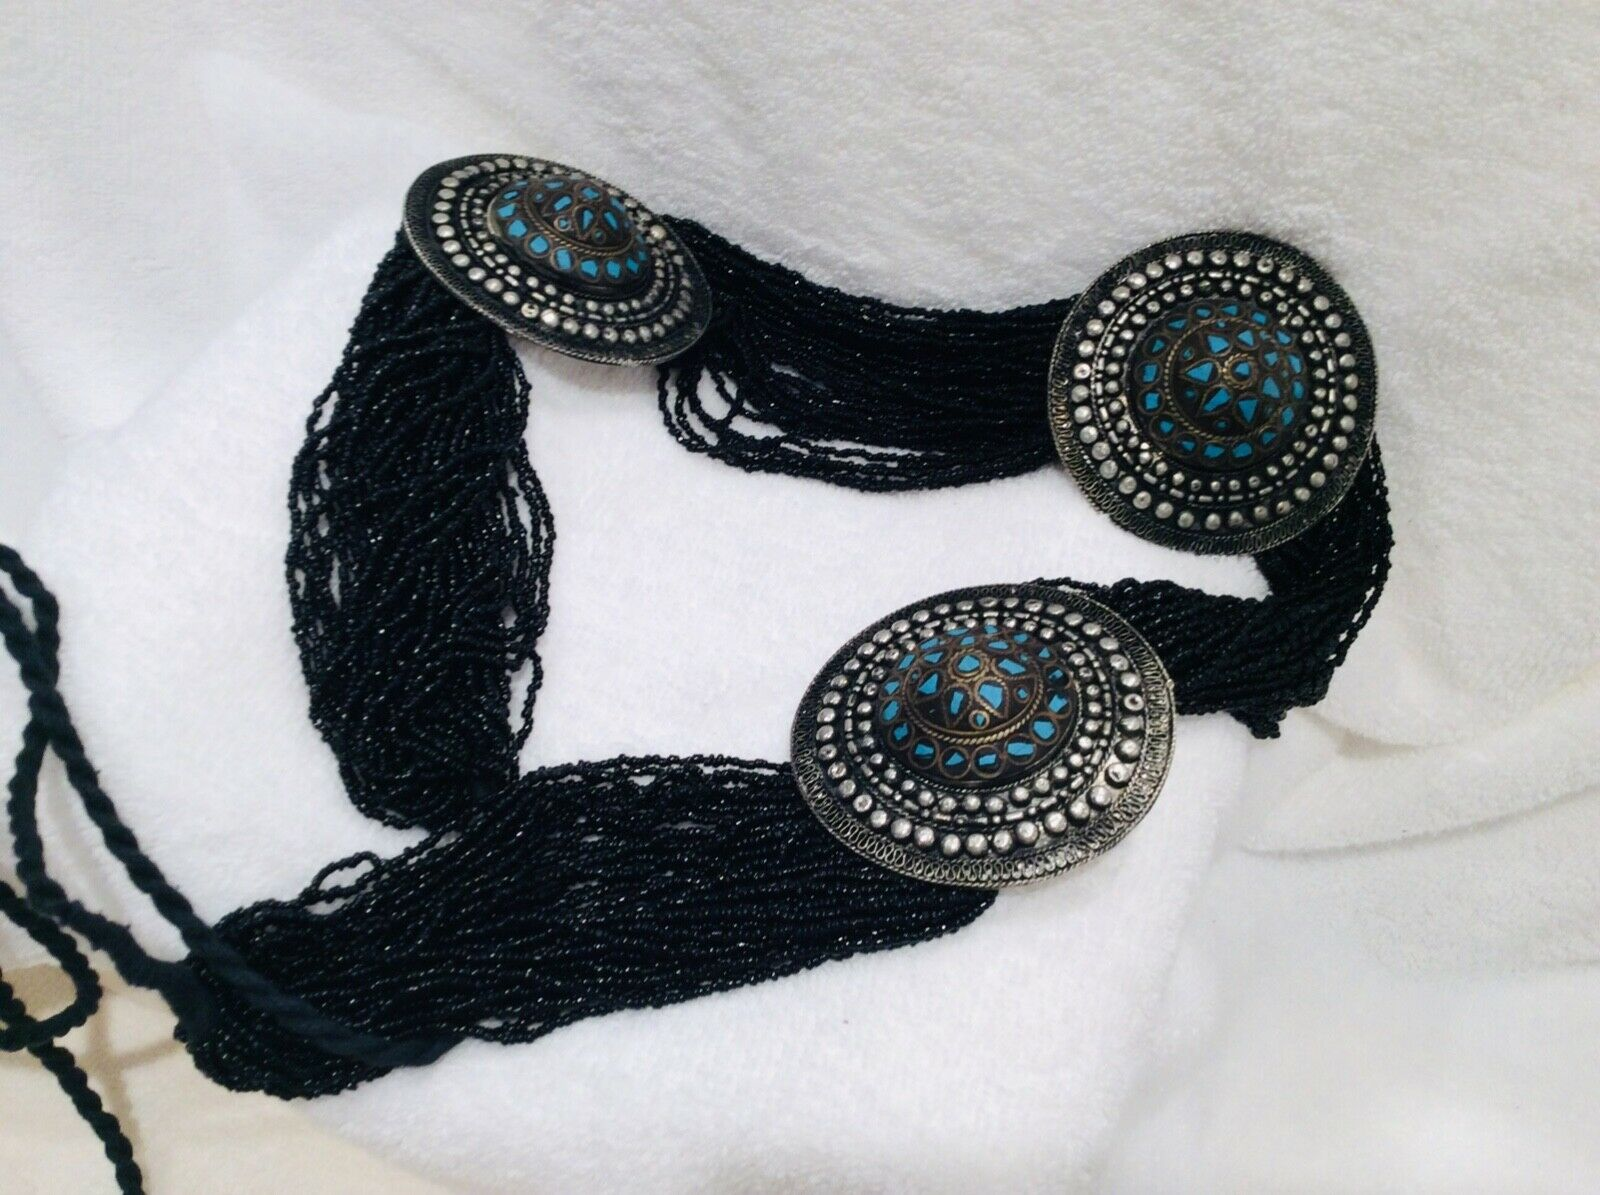 BLACK GLASS BEADED TURQUOISE SILVER ENGRAVED CONCHO MEDALLION BELT sz.small ties